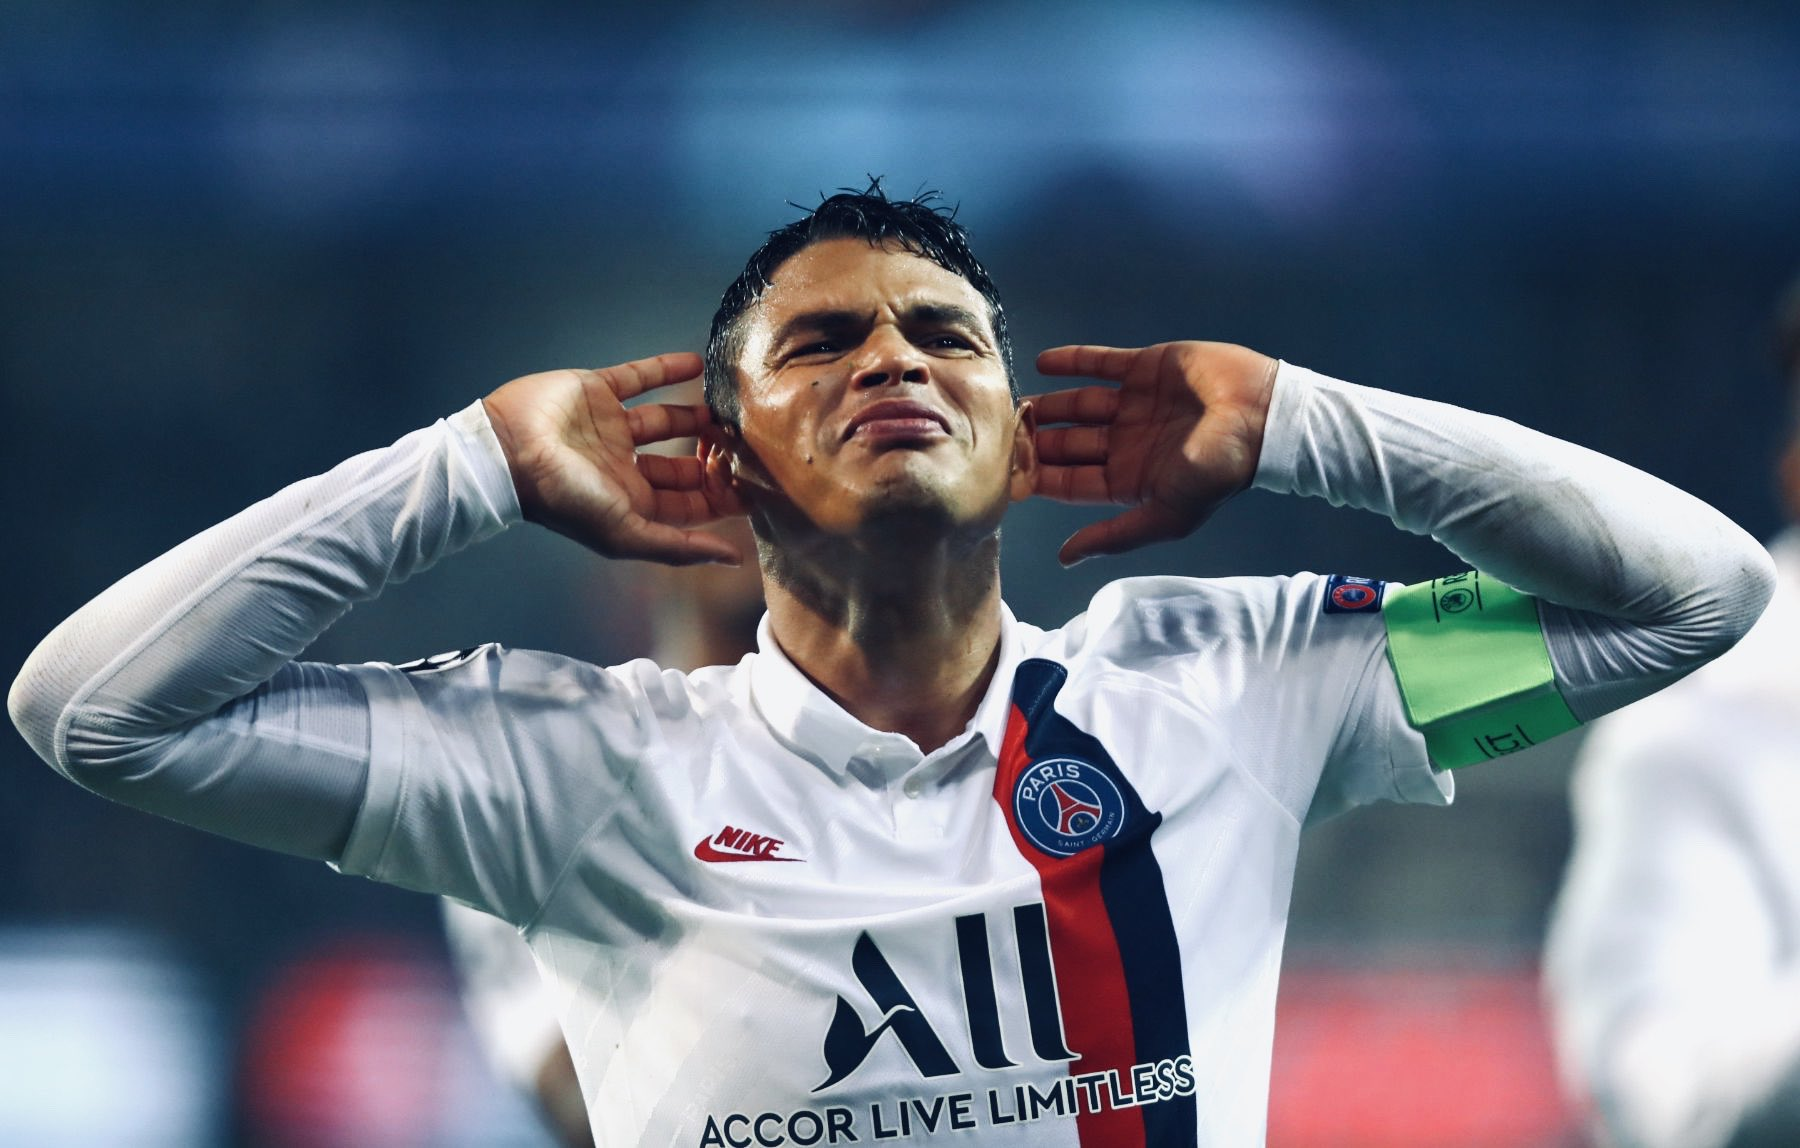 Frank Lampard offered chance to sign Thiago Silva